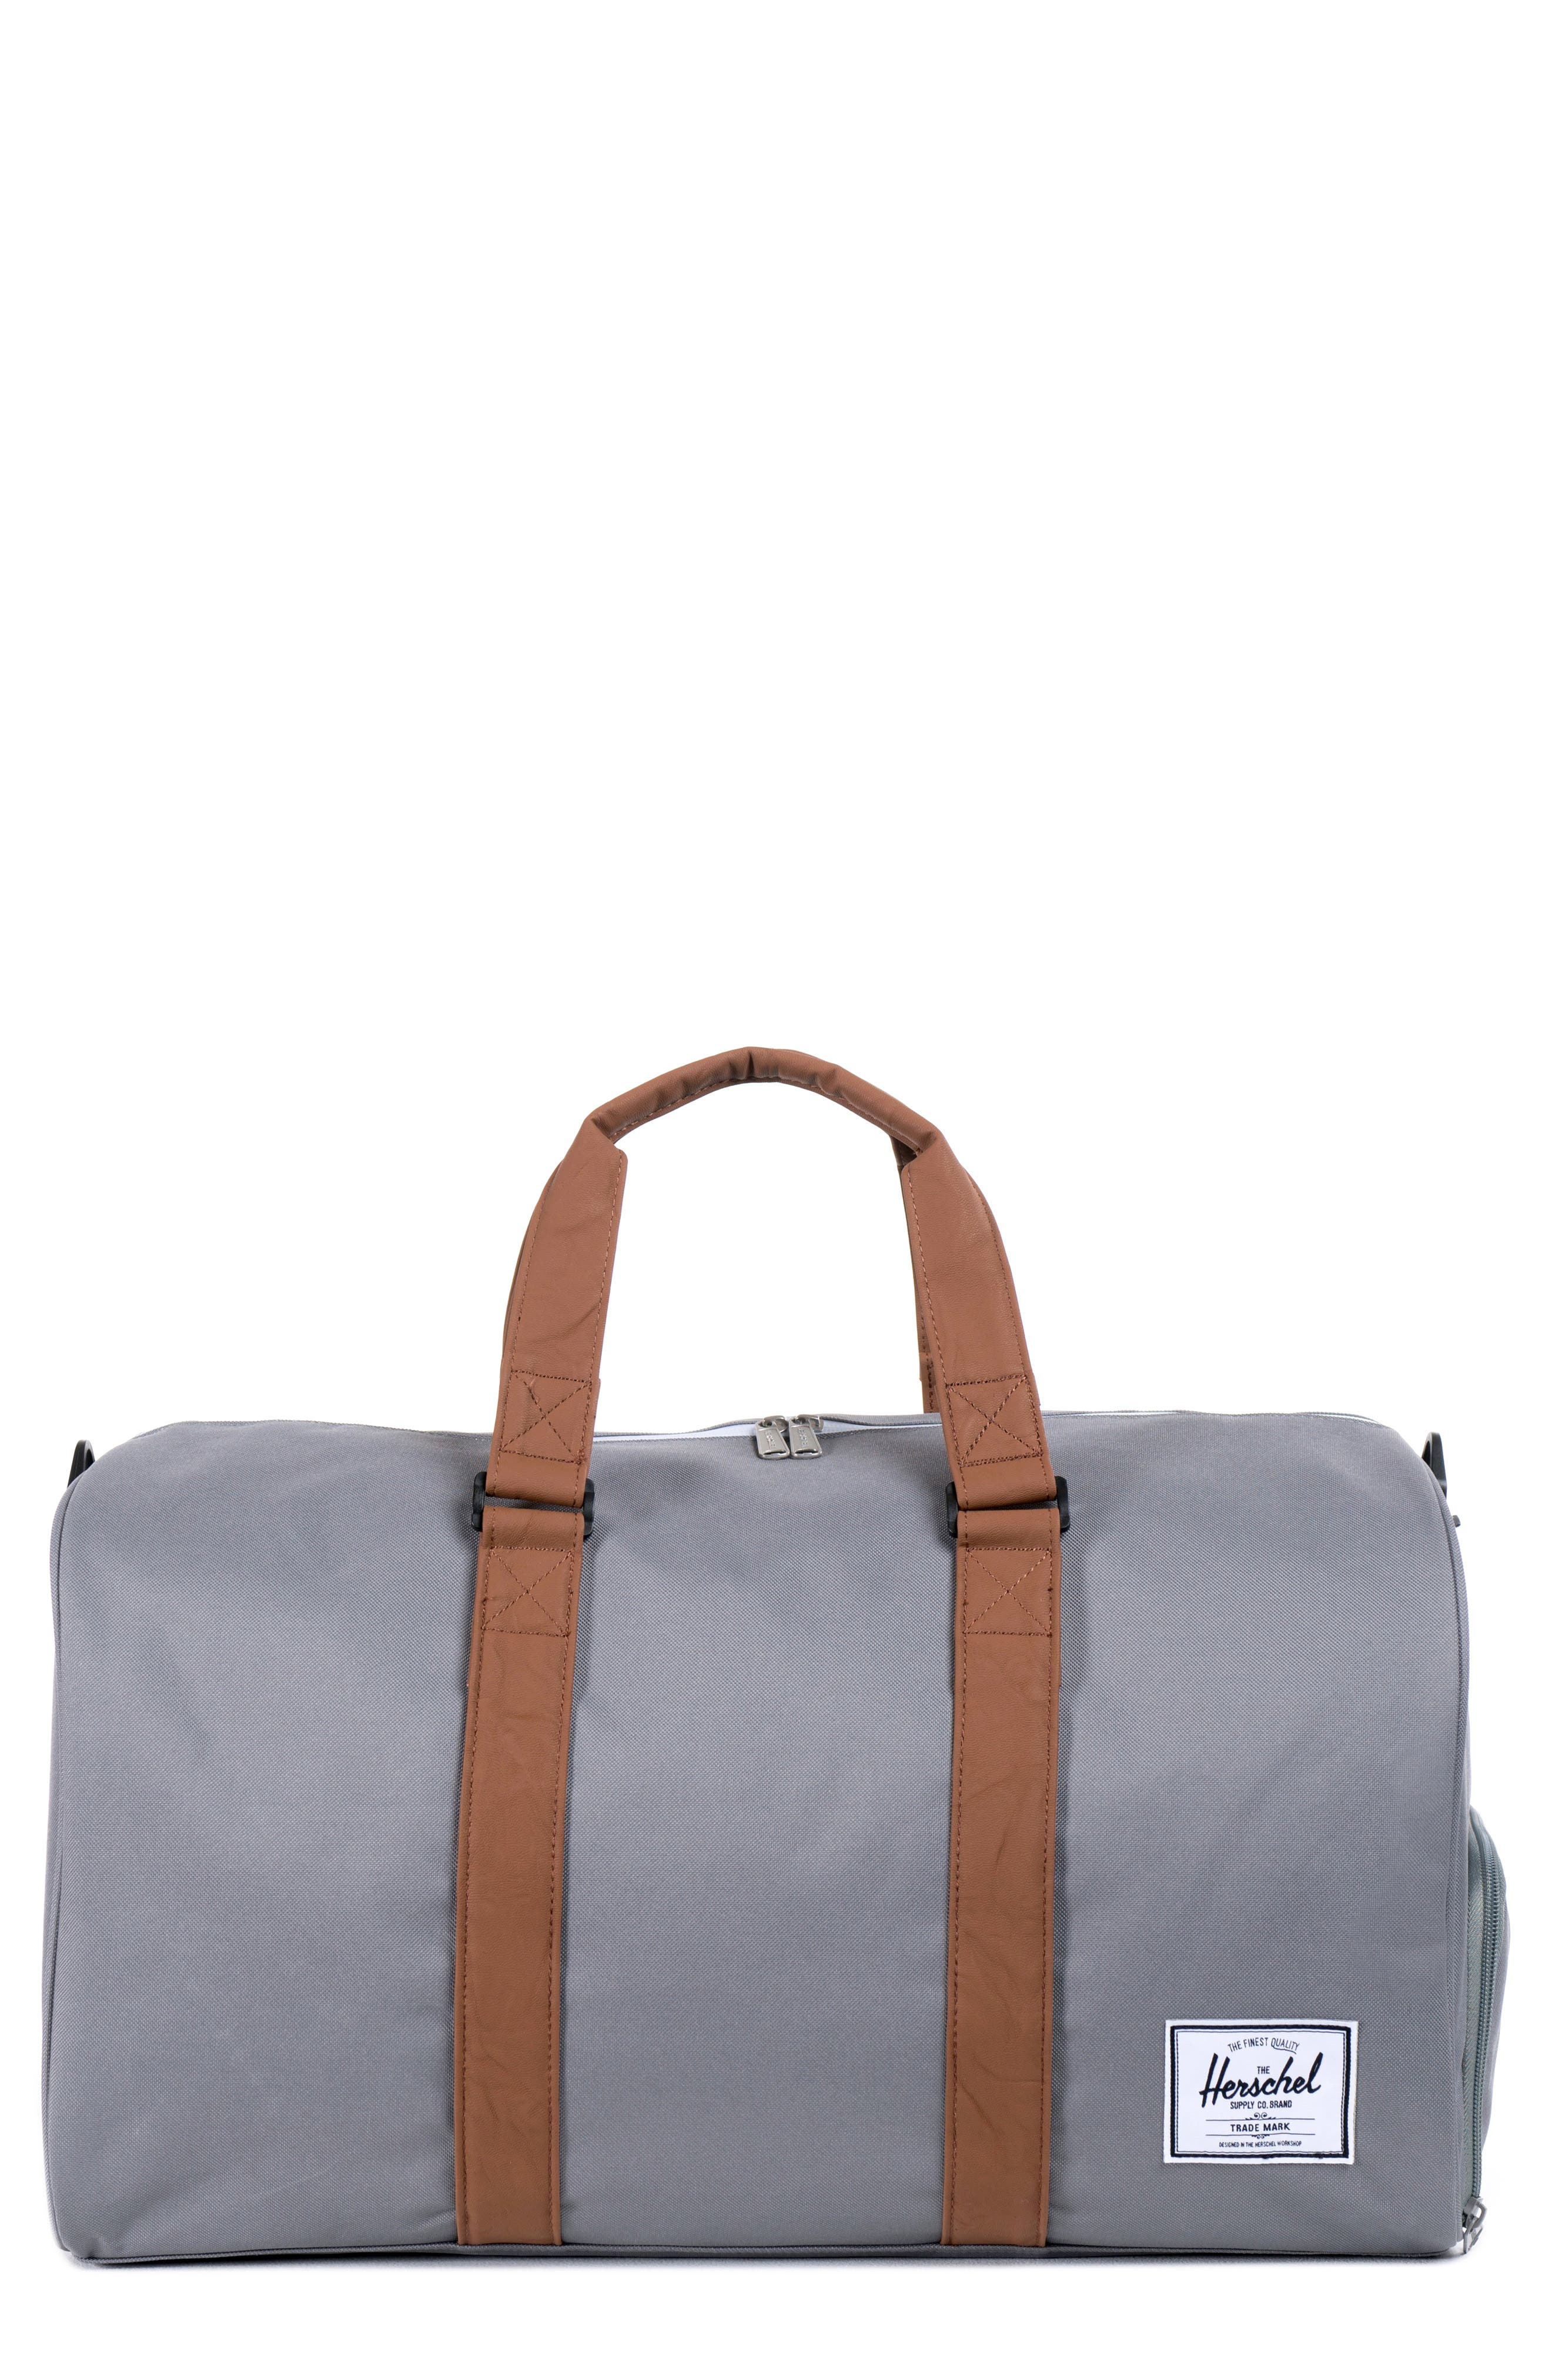 HERSCHEL SUPPLY CO. Novel Canvas Duffle Bag, Main, color, GREY/ TAN